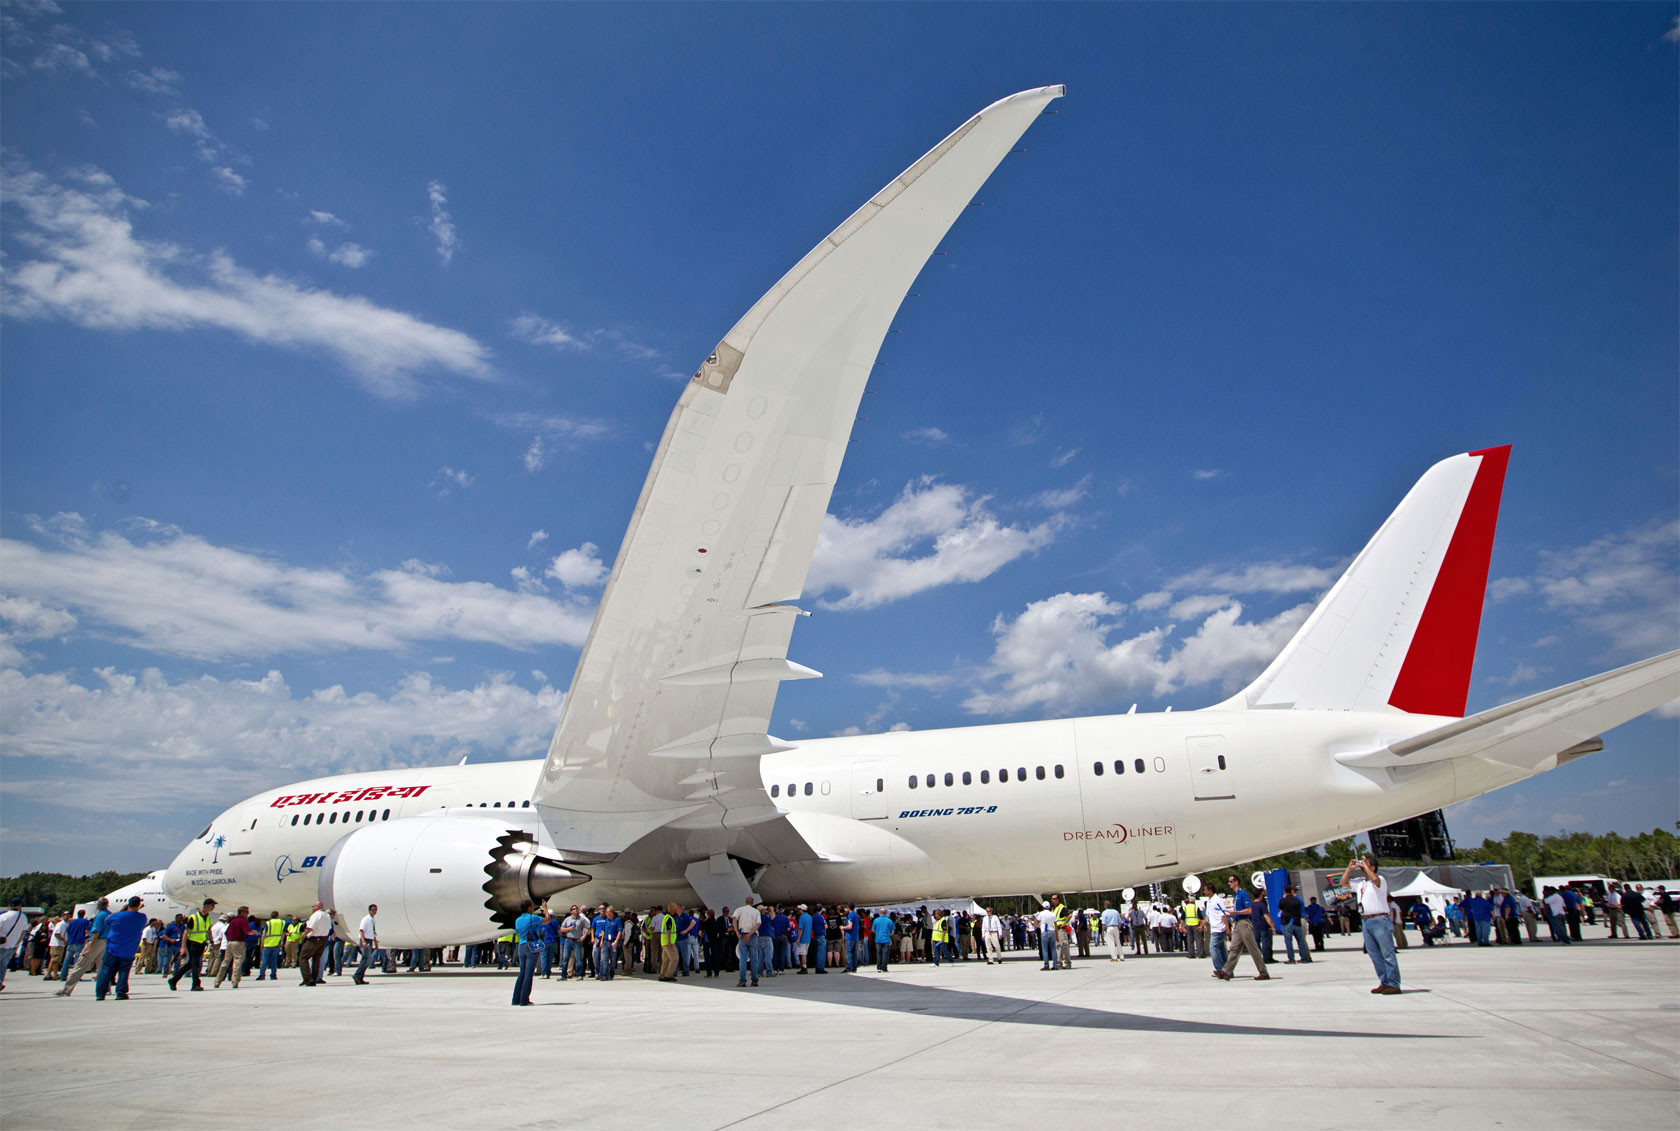 Batik Air is a scheduled Indonesian airline which made its maiden ...